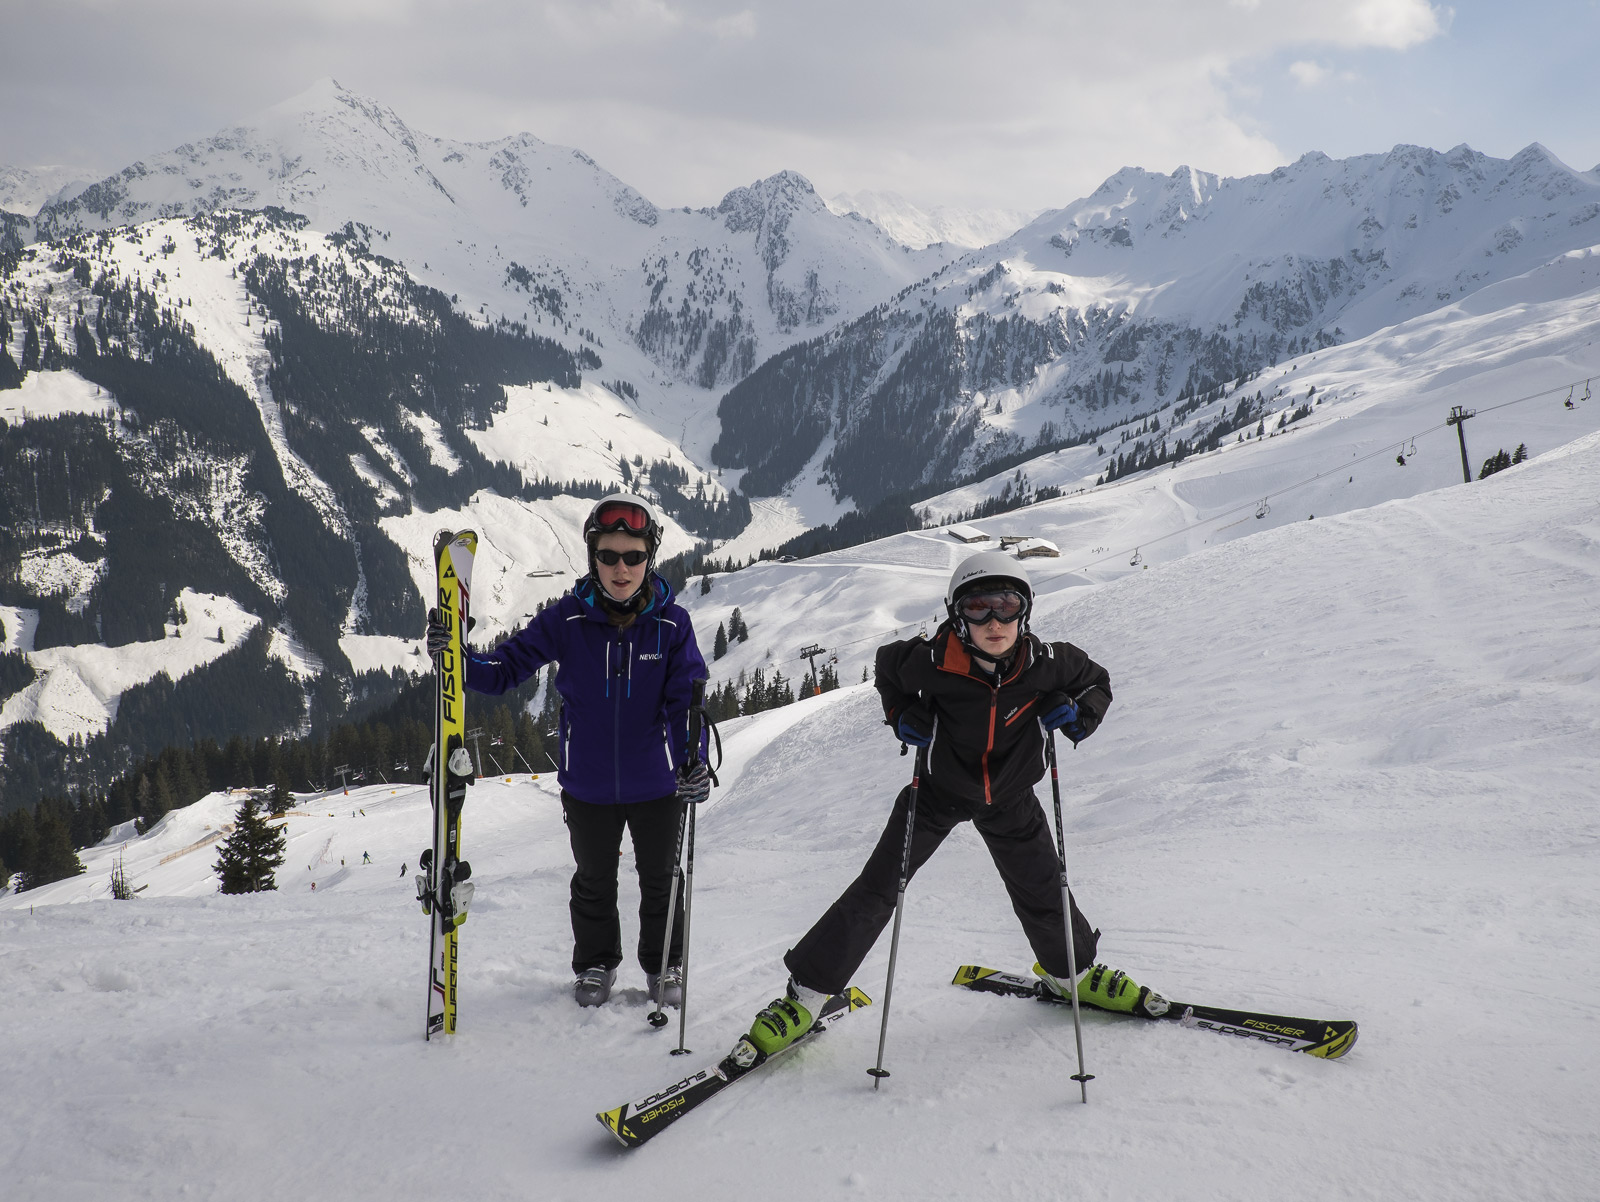 Ben and Lauren posing in front of the Austrian Alps at the top of the main gondola station in Alpbach, a rare moment when the...